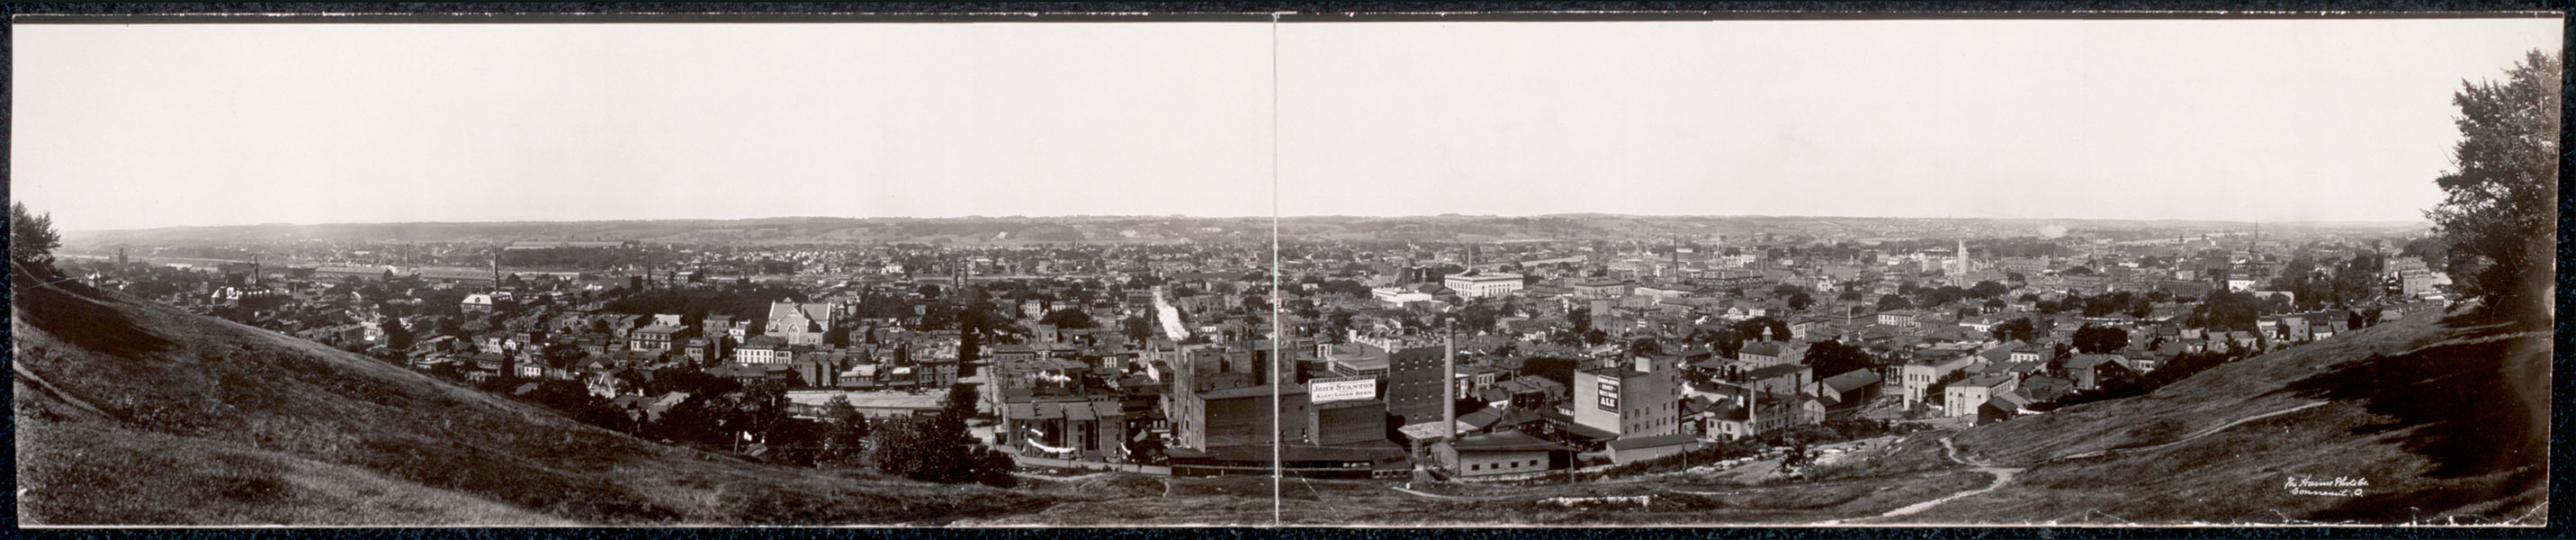 Panorama View of Troy, Looking West from Prospect Park, c1909 (click-drag to view)